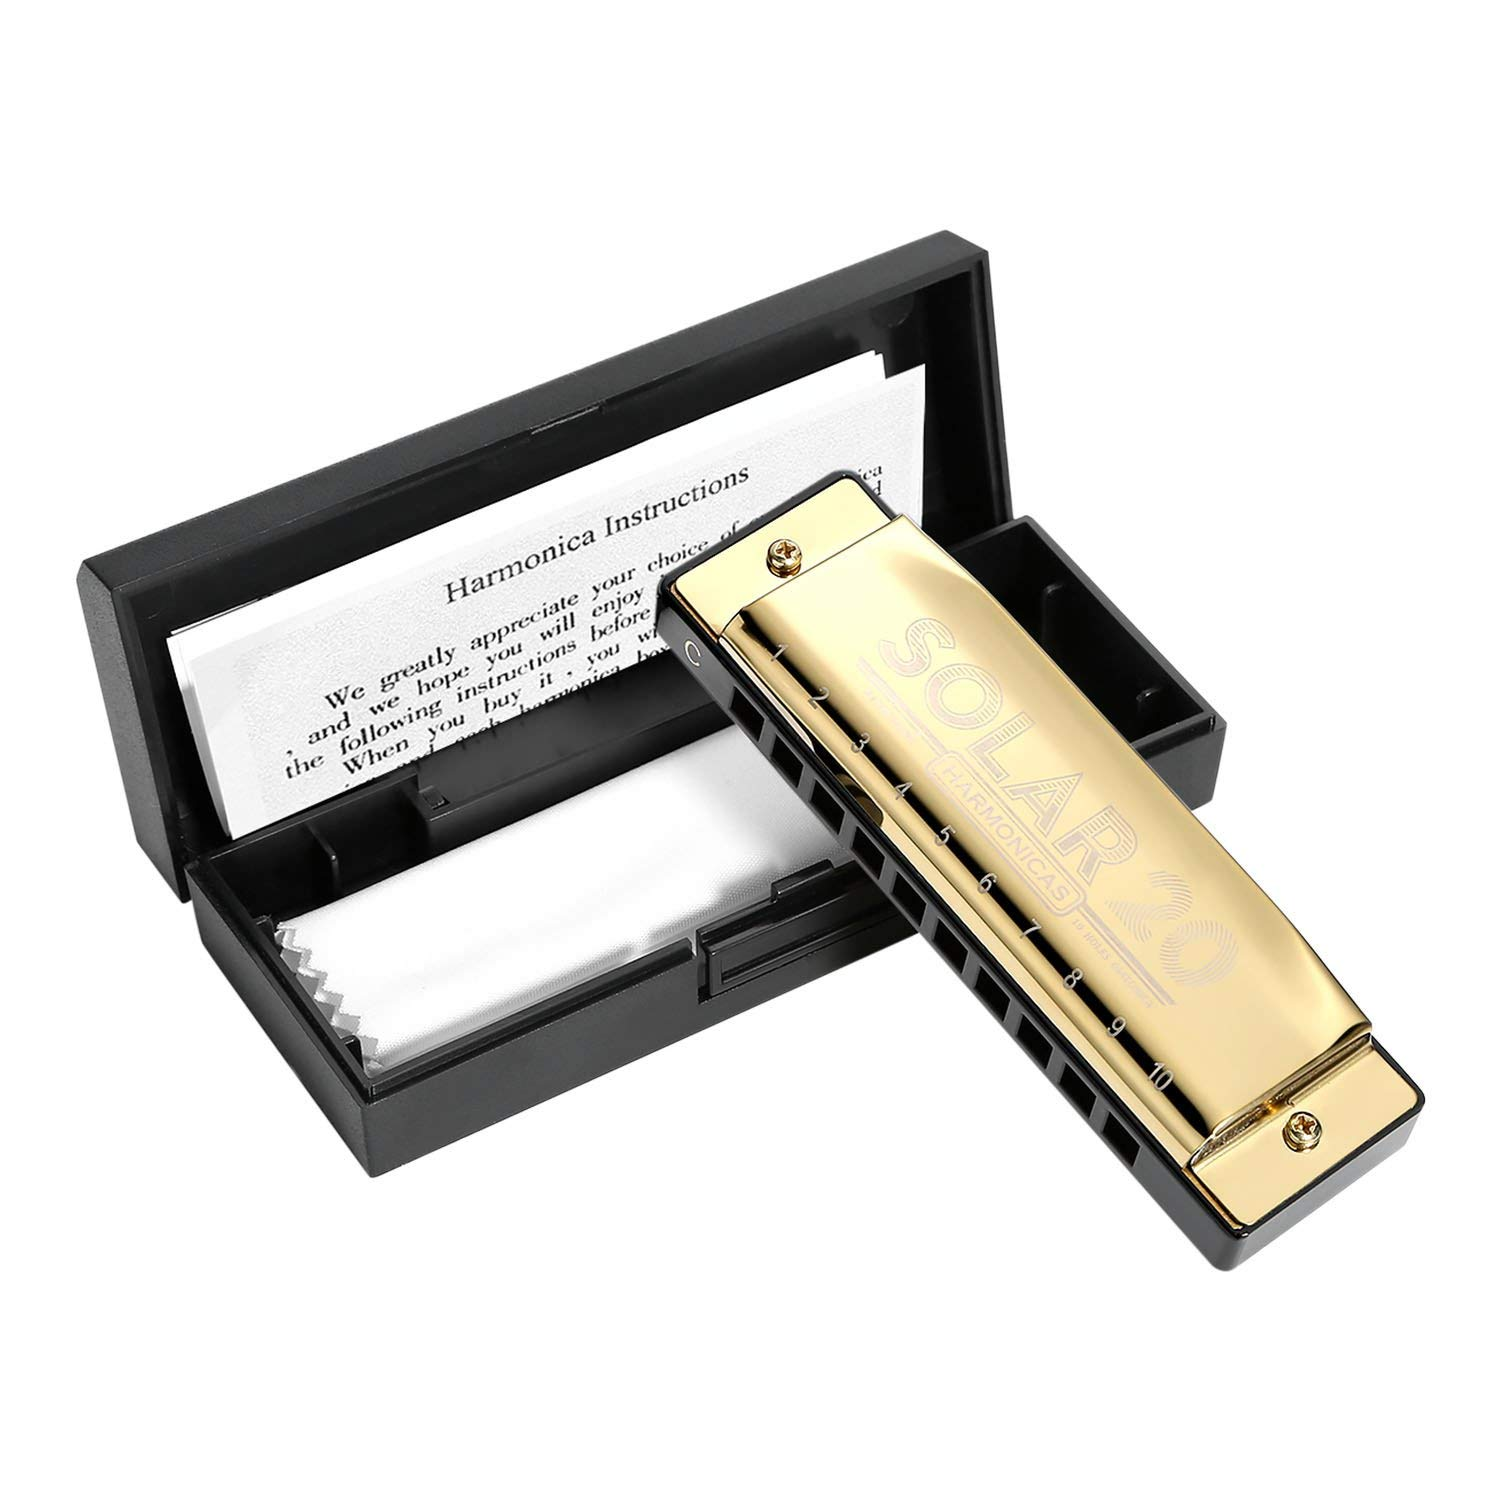 Harmonica C Blues Diatonic Ballad Unisex Harmonica Standard 10 Hole, Mini Harmonica for Adults Mens Womens Beginners Students Children Kids Gifts, Blues Harp for Rock Country Folk Jazz with Case-Gold